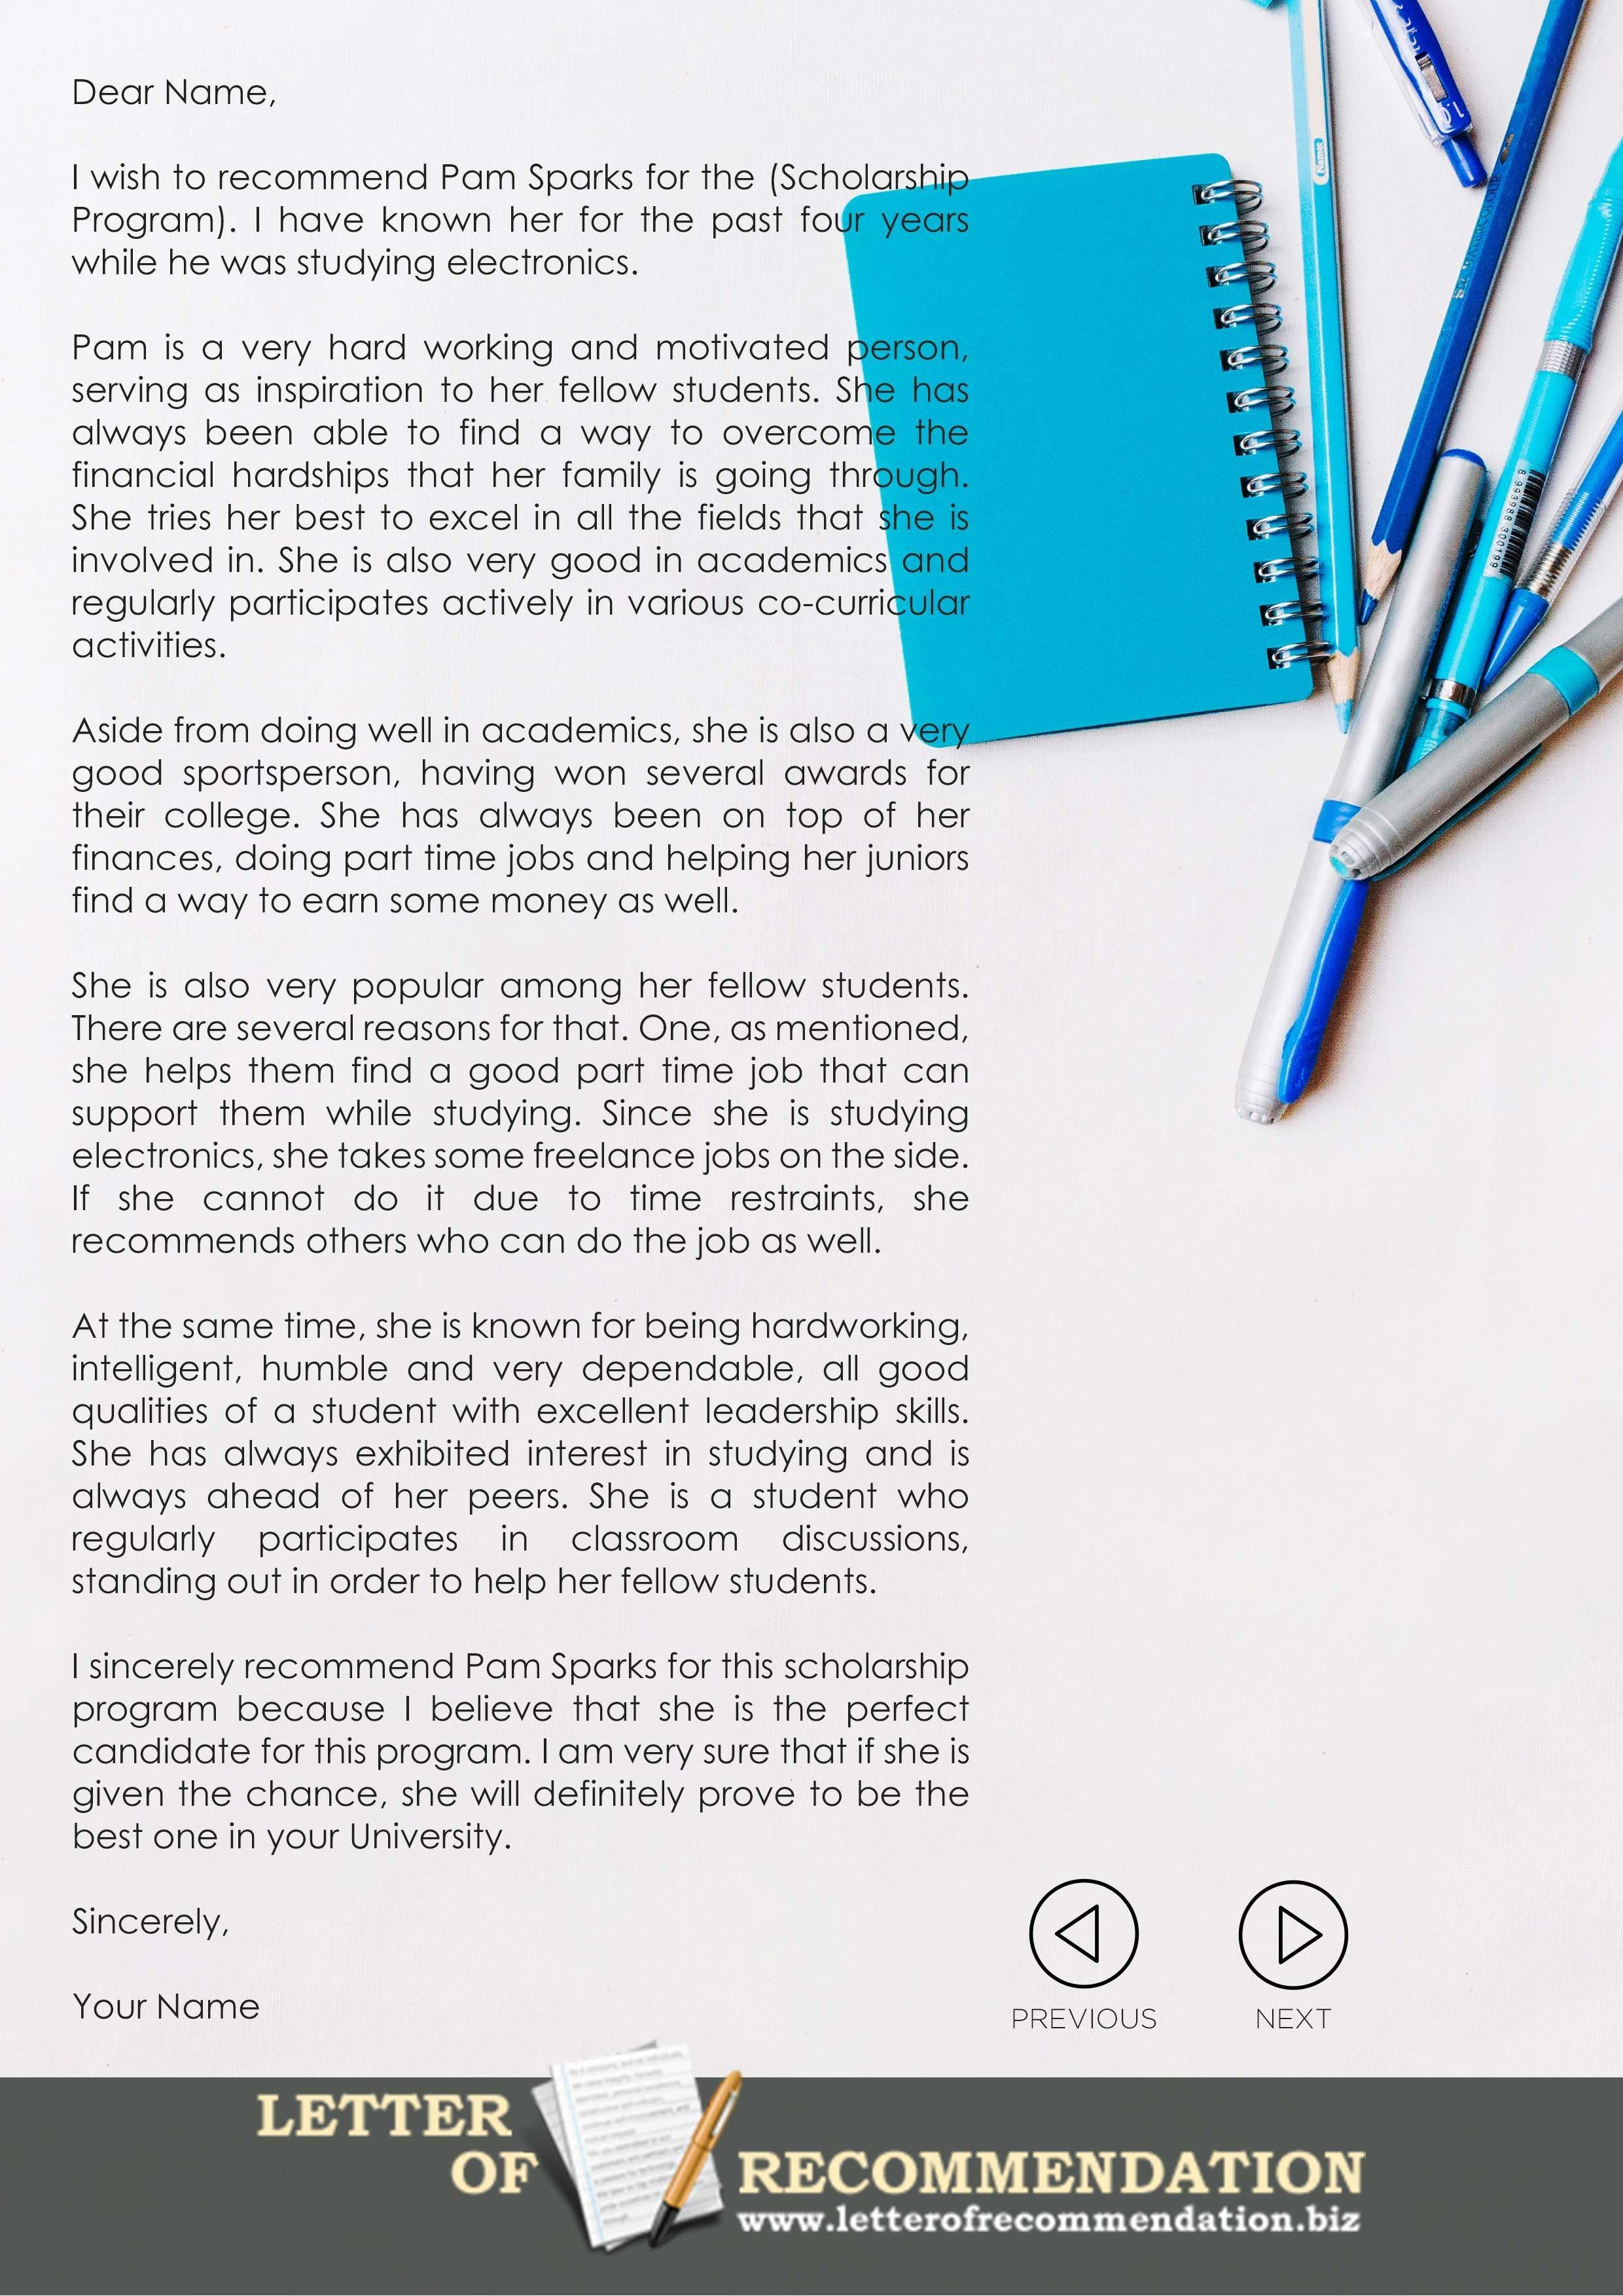 New Letter format for Stationery Request